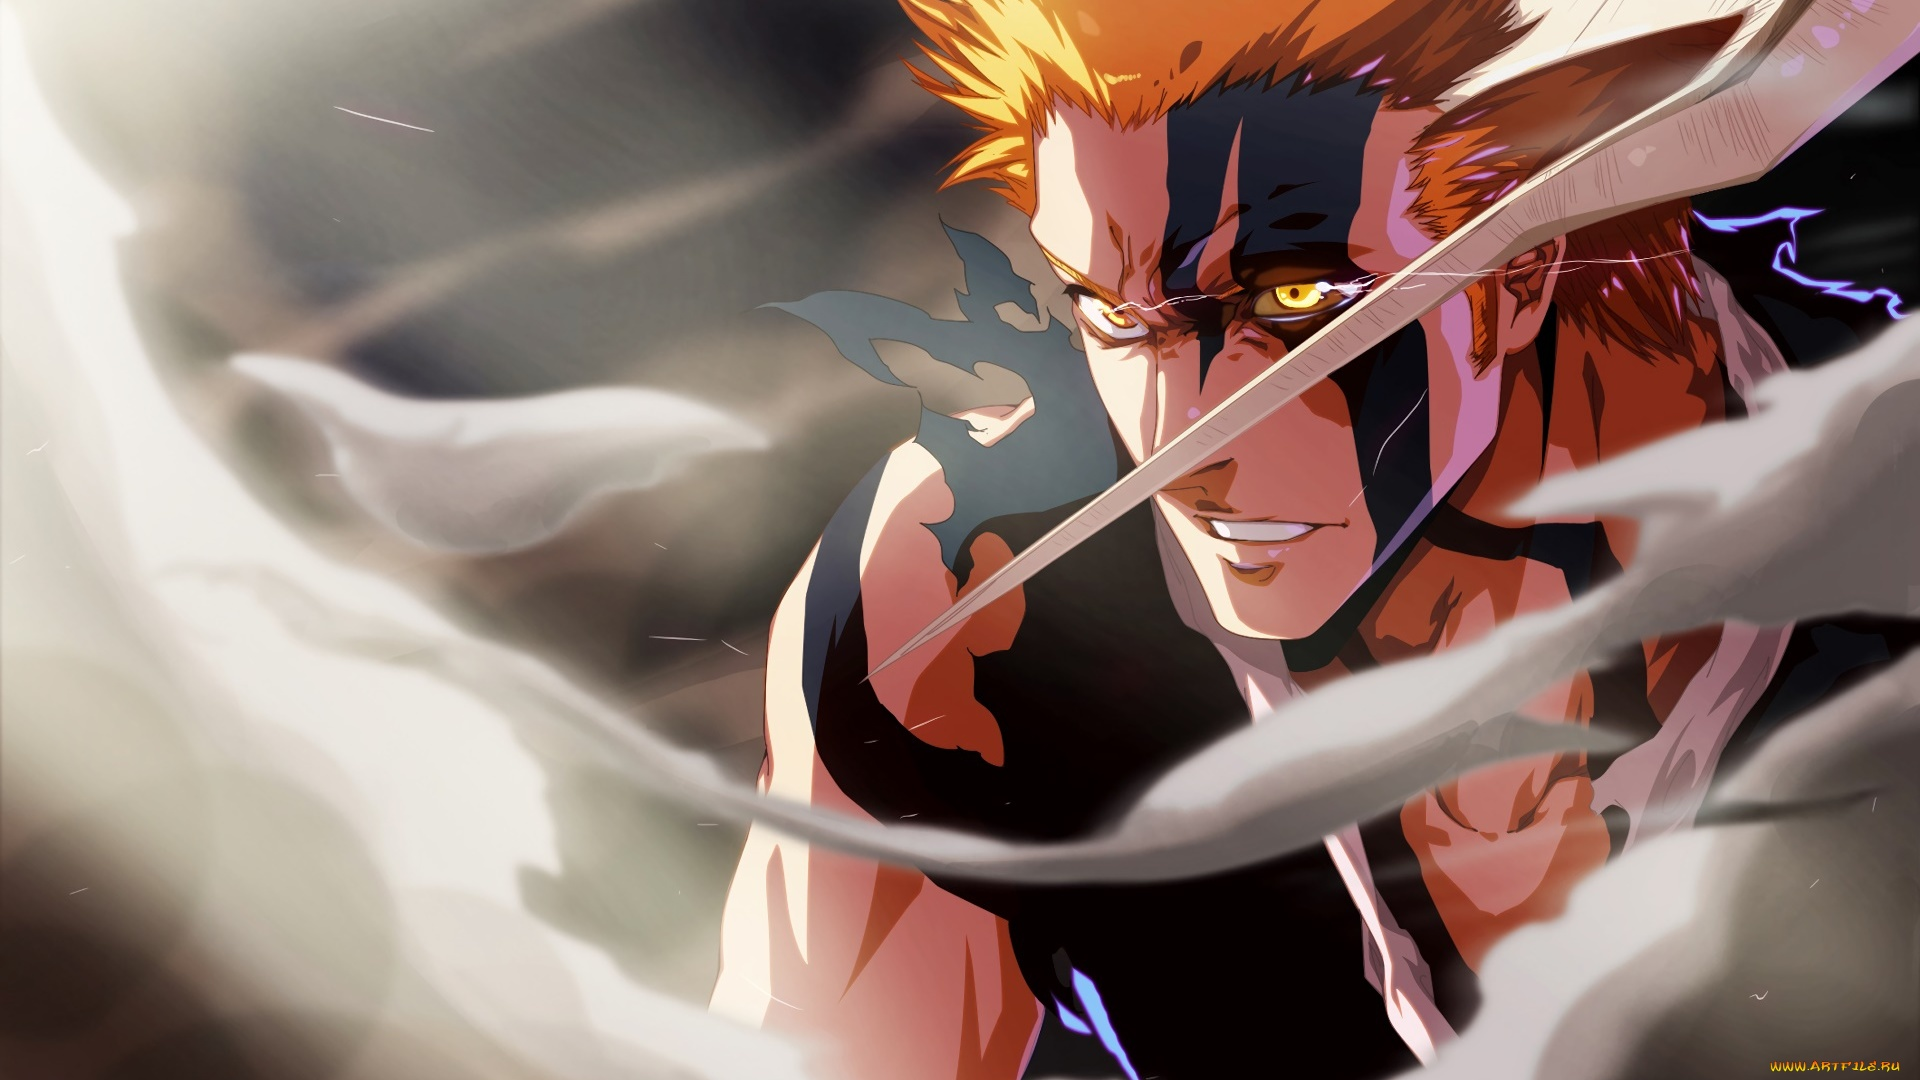 Bleach background picture